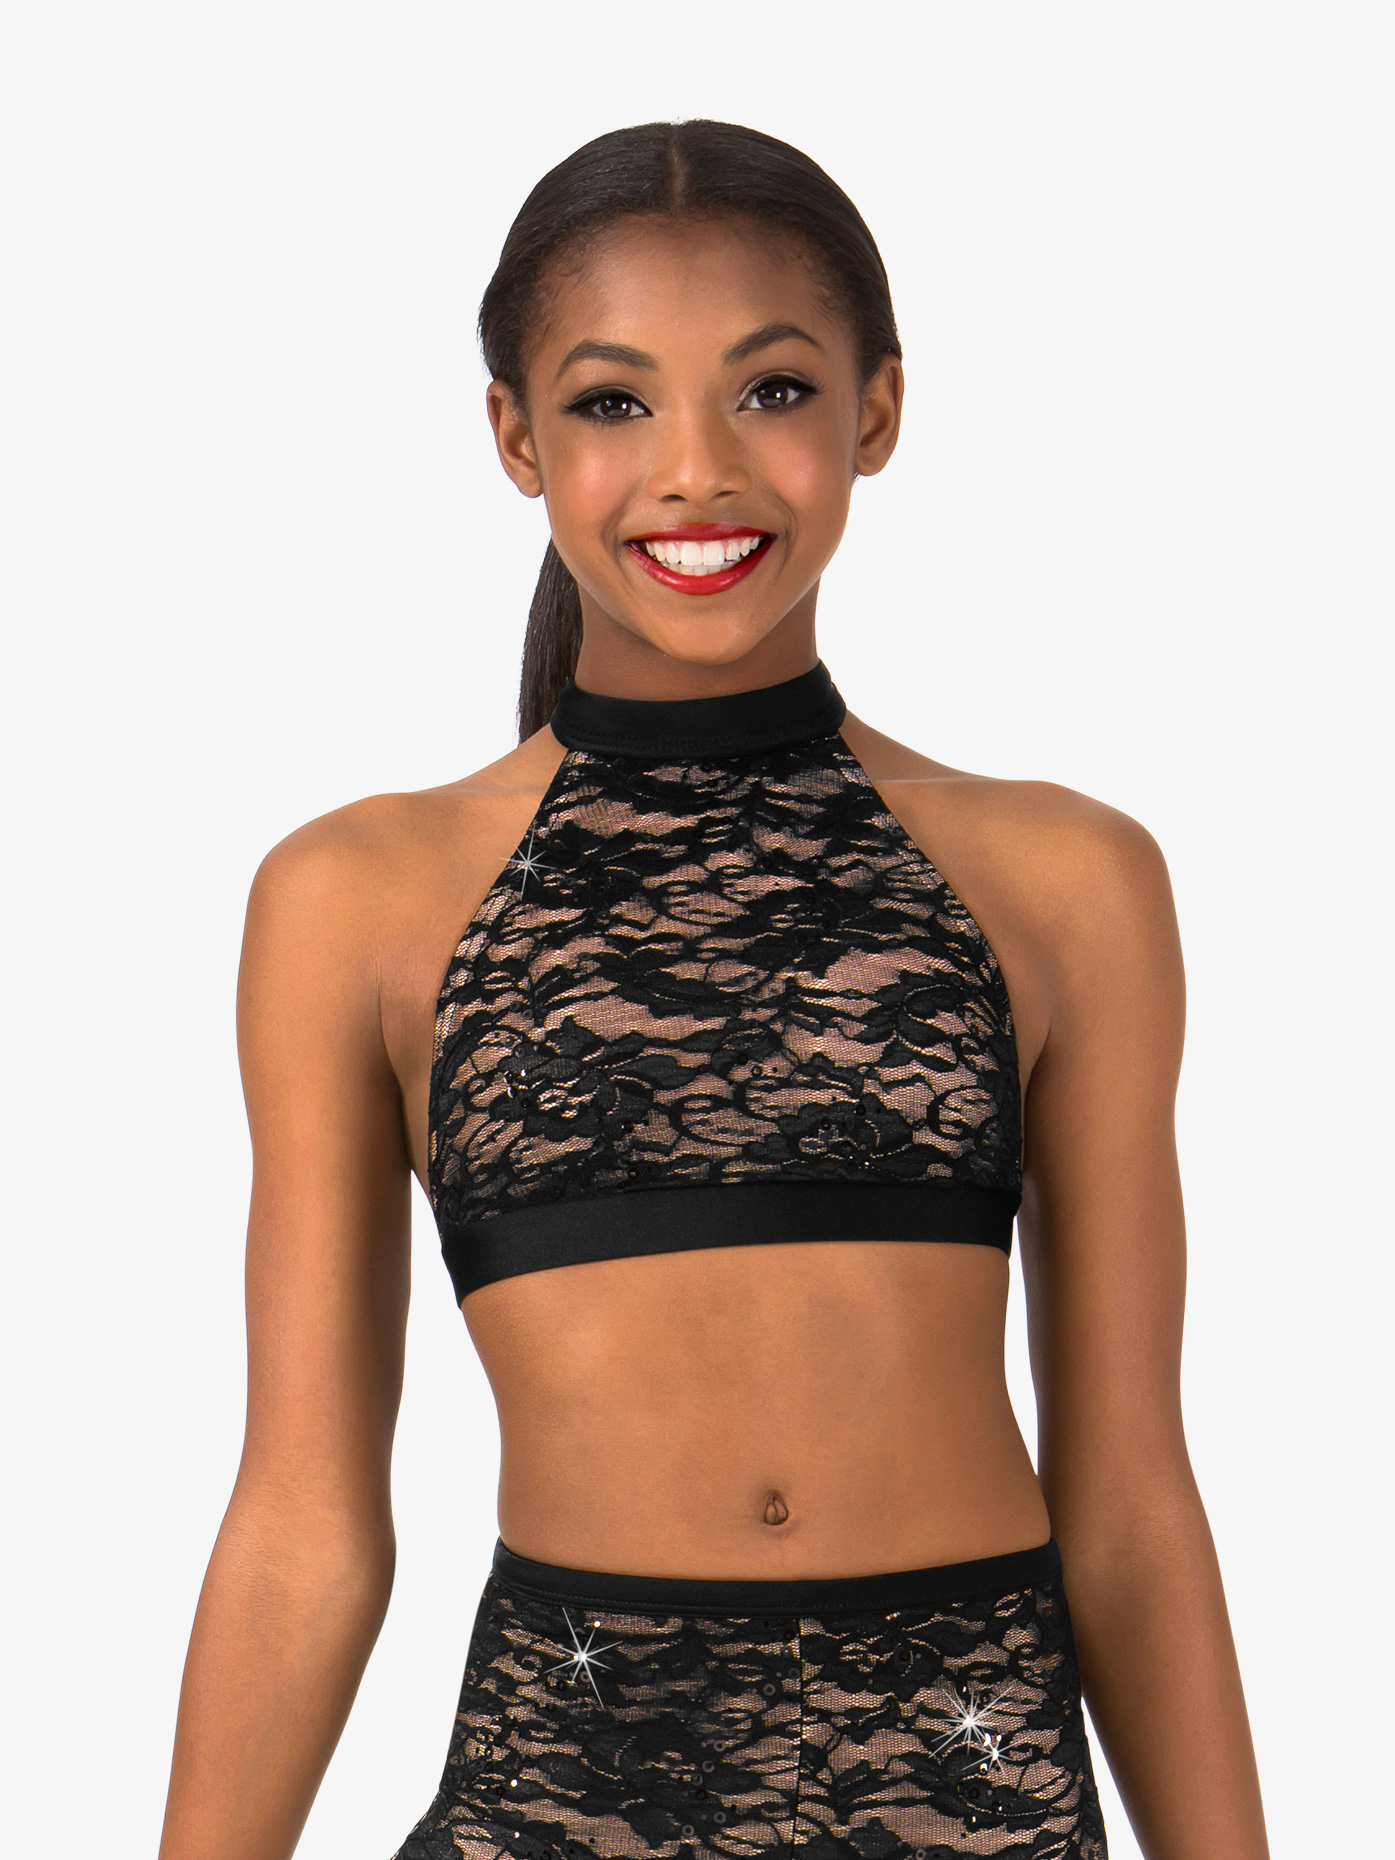 Elisse by Double Platinum Girls Lace T-Back Dance Bra Top N7491C